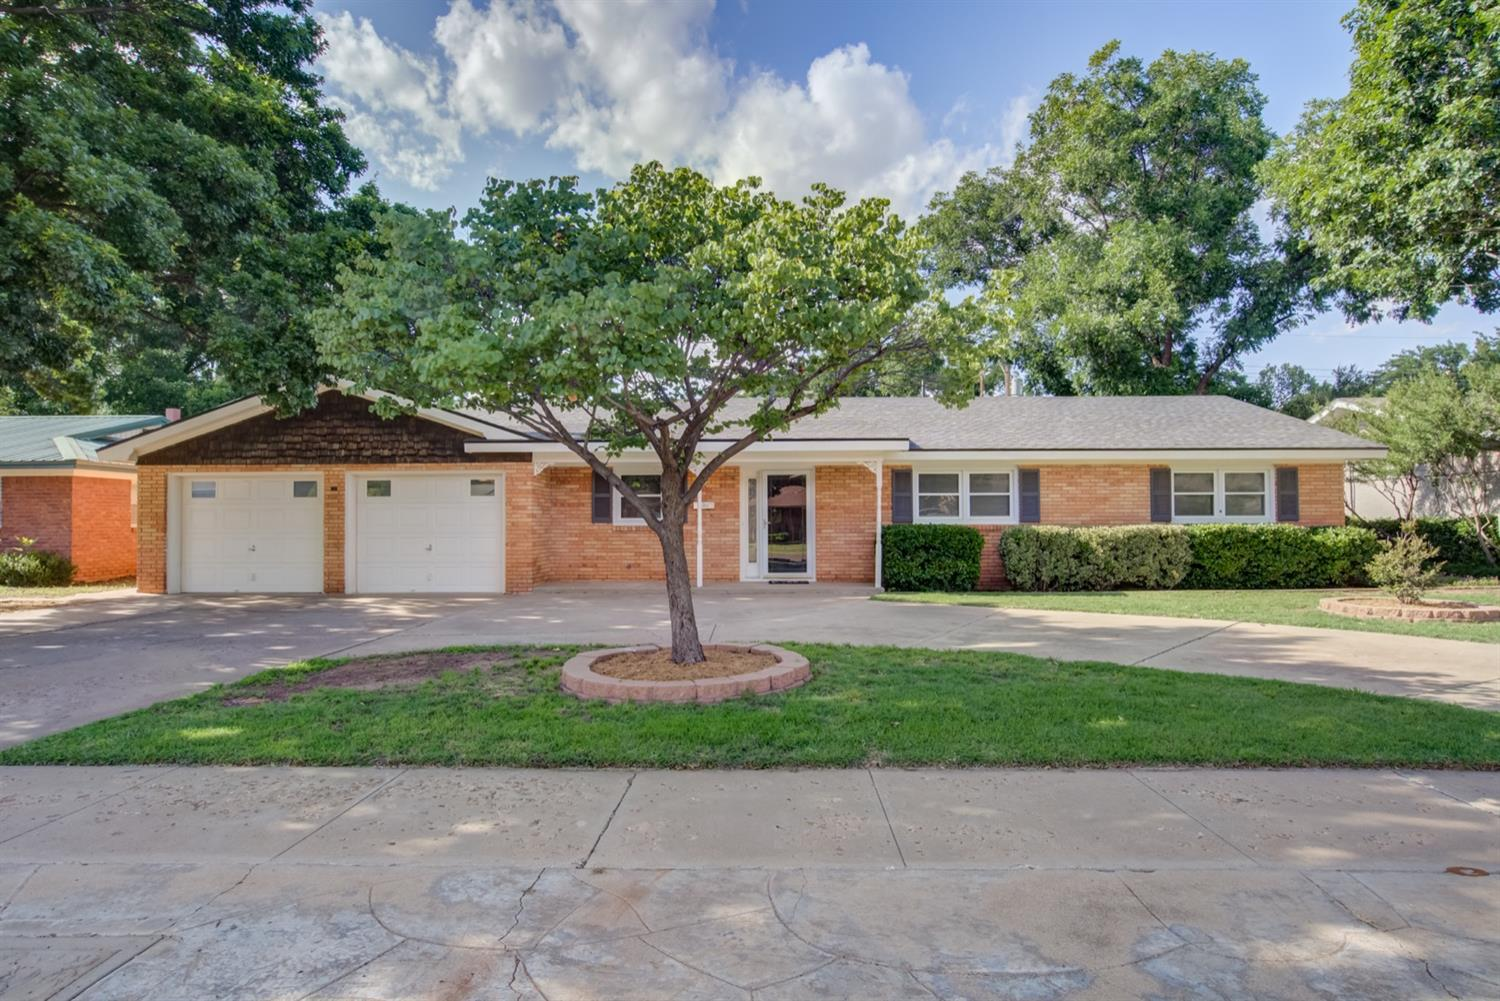 3008 67th Street, Lubbock in Lubbock County, TX 79413 Home for Sale